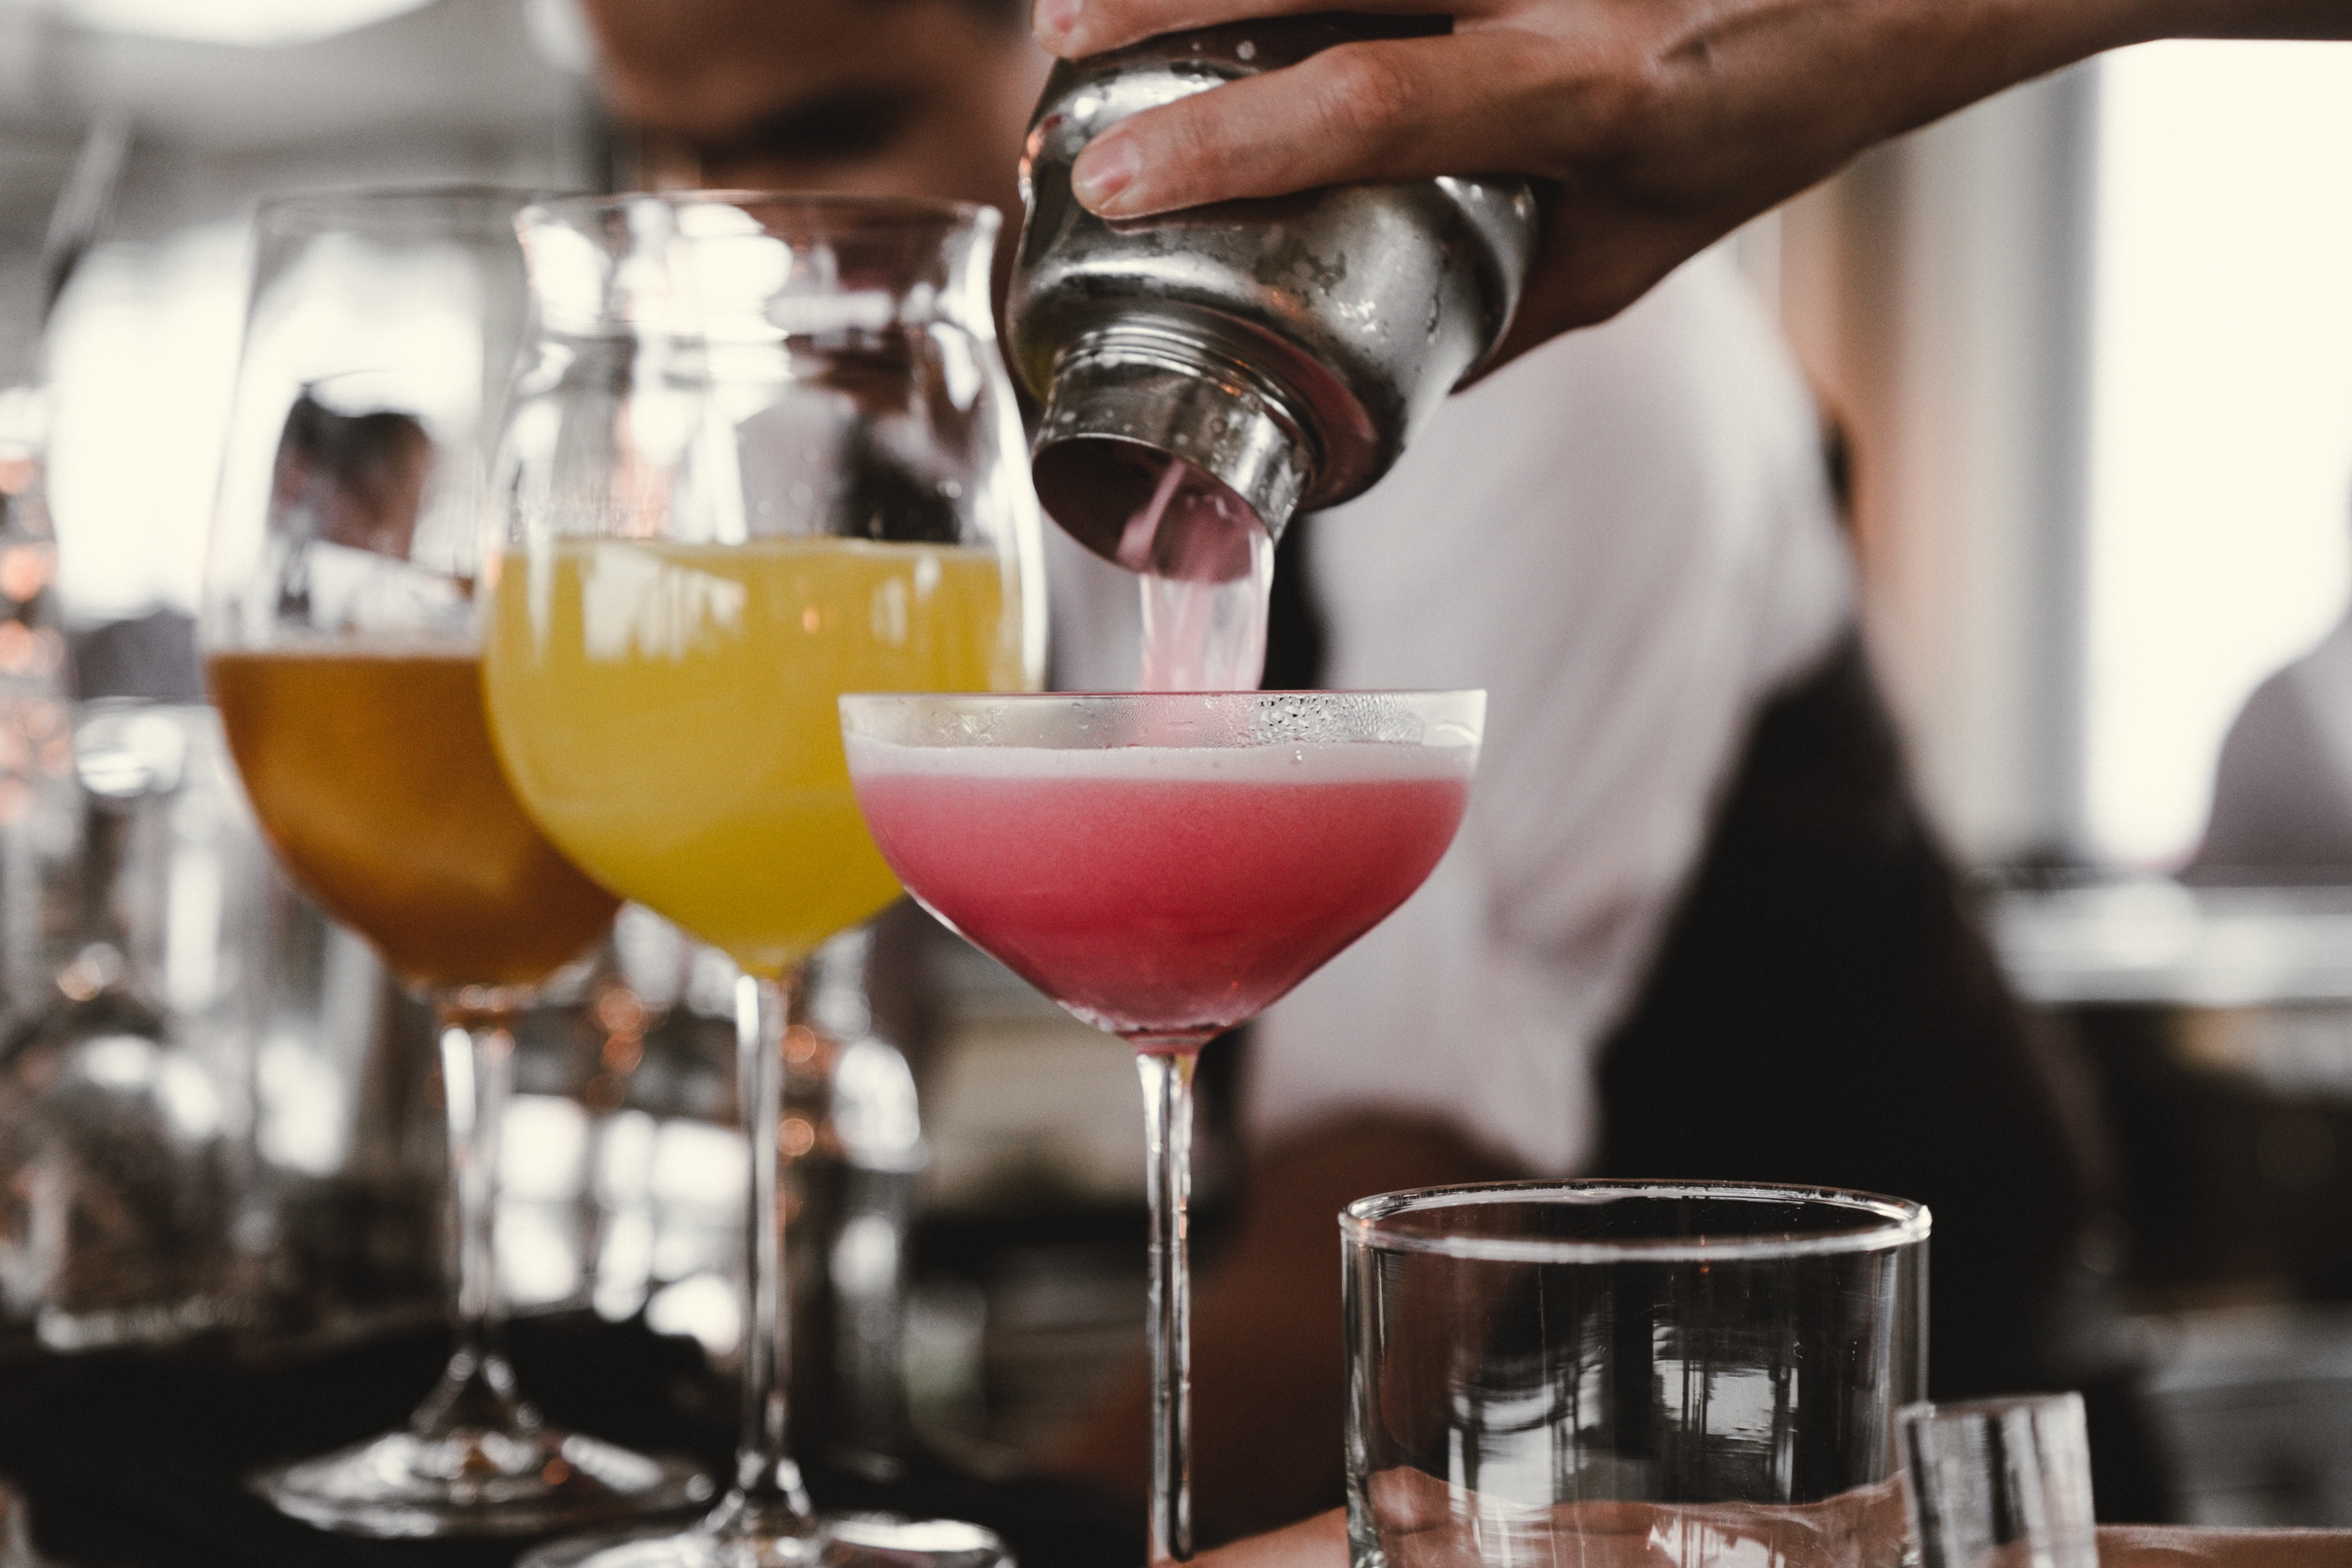 Want some good cocktails in Miami? Visit the Broken Shaker - a true gem of nightlife in Miami!